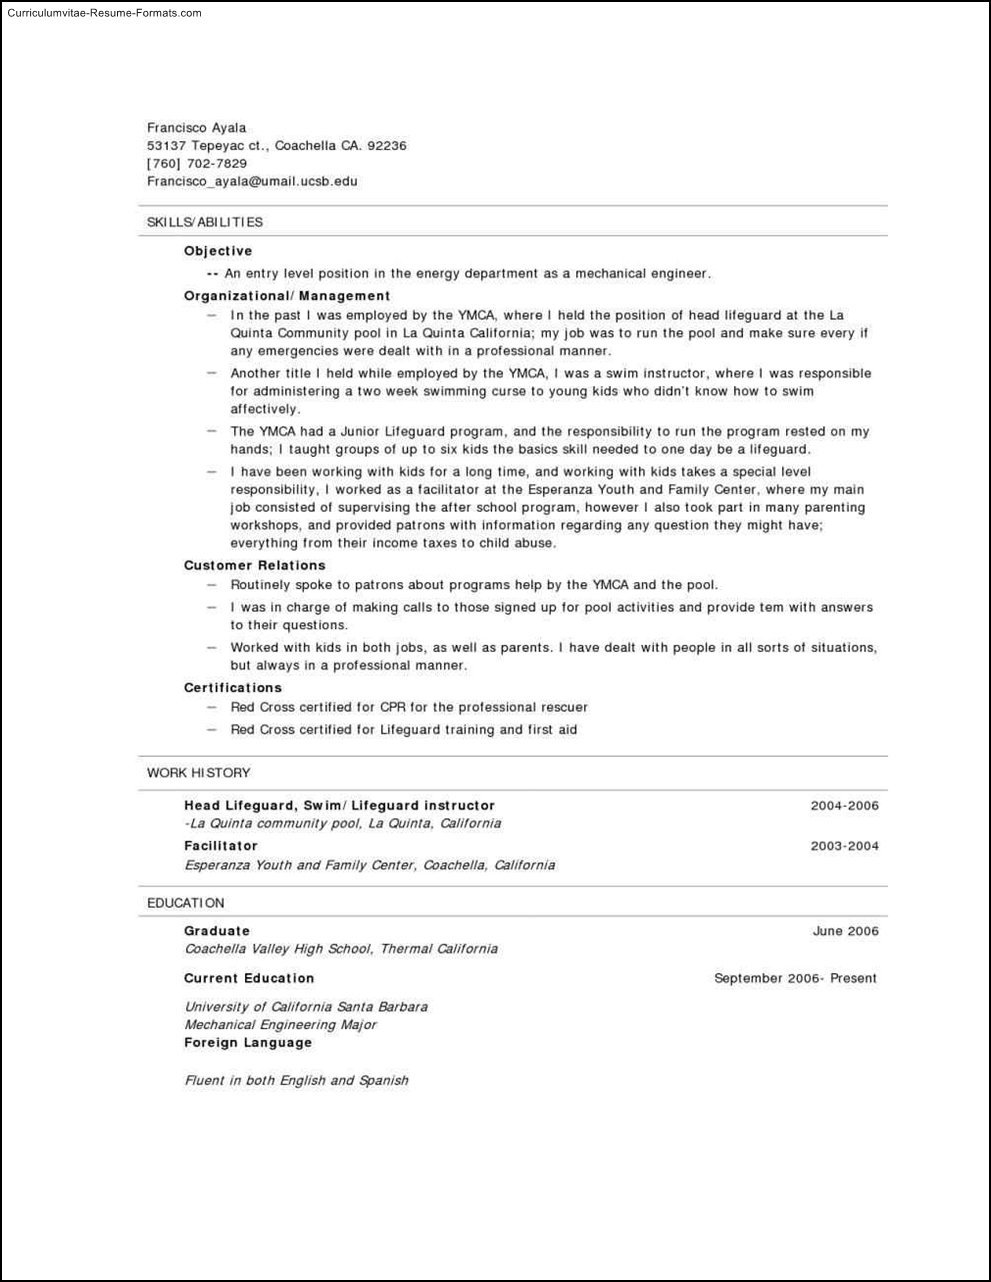 Lifeguard Resume Template  Free Samples  Examples  Format Resume  Curruculum Vitae  Free